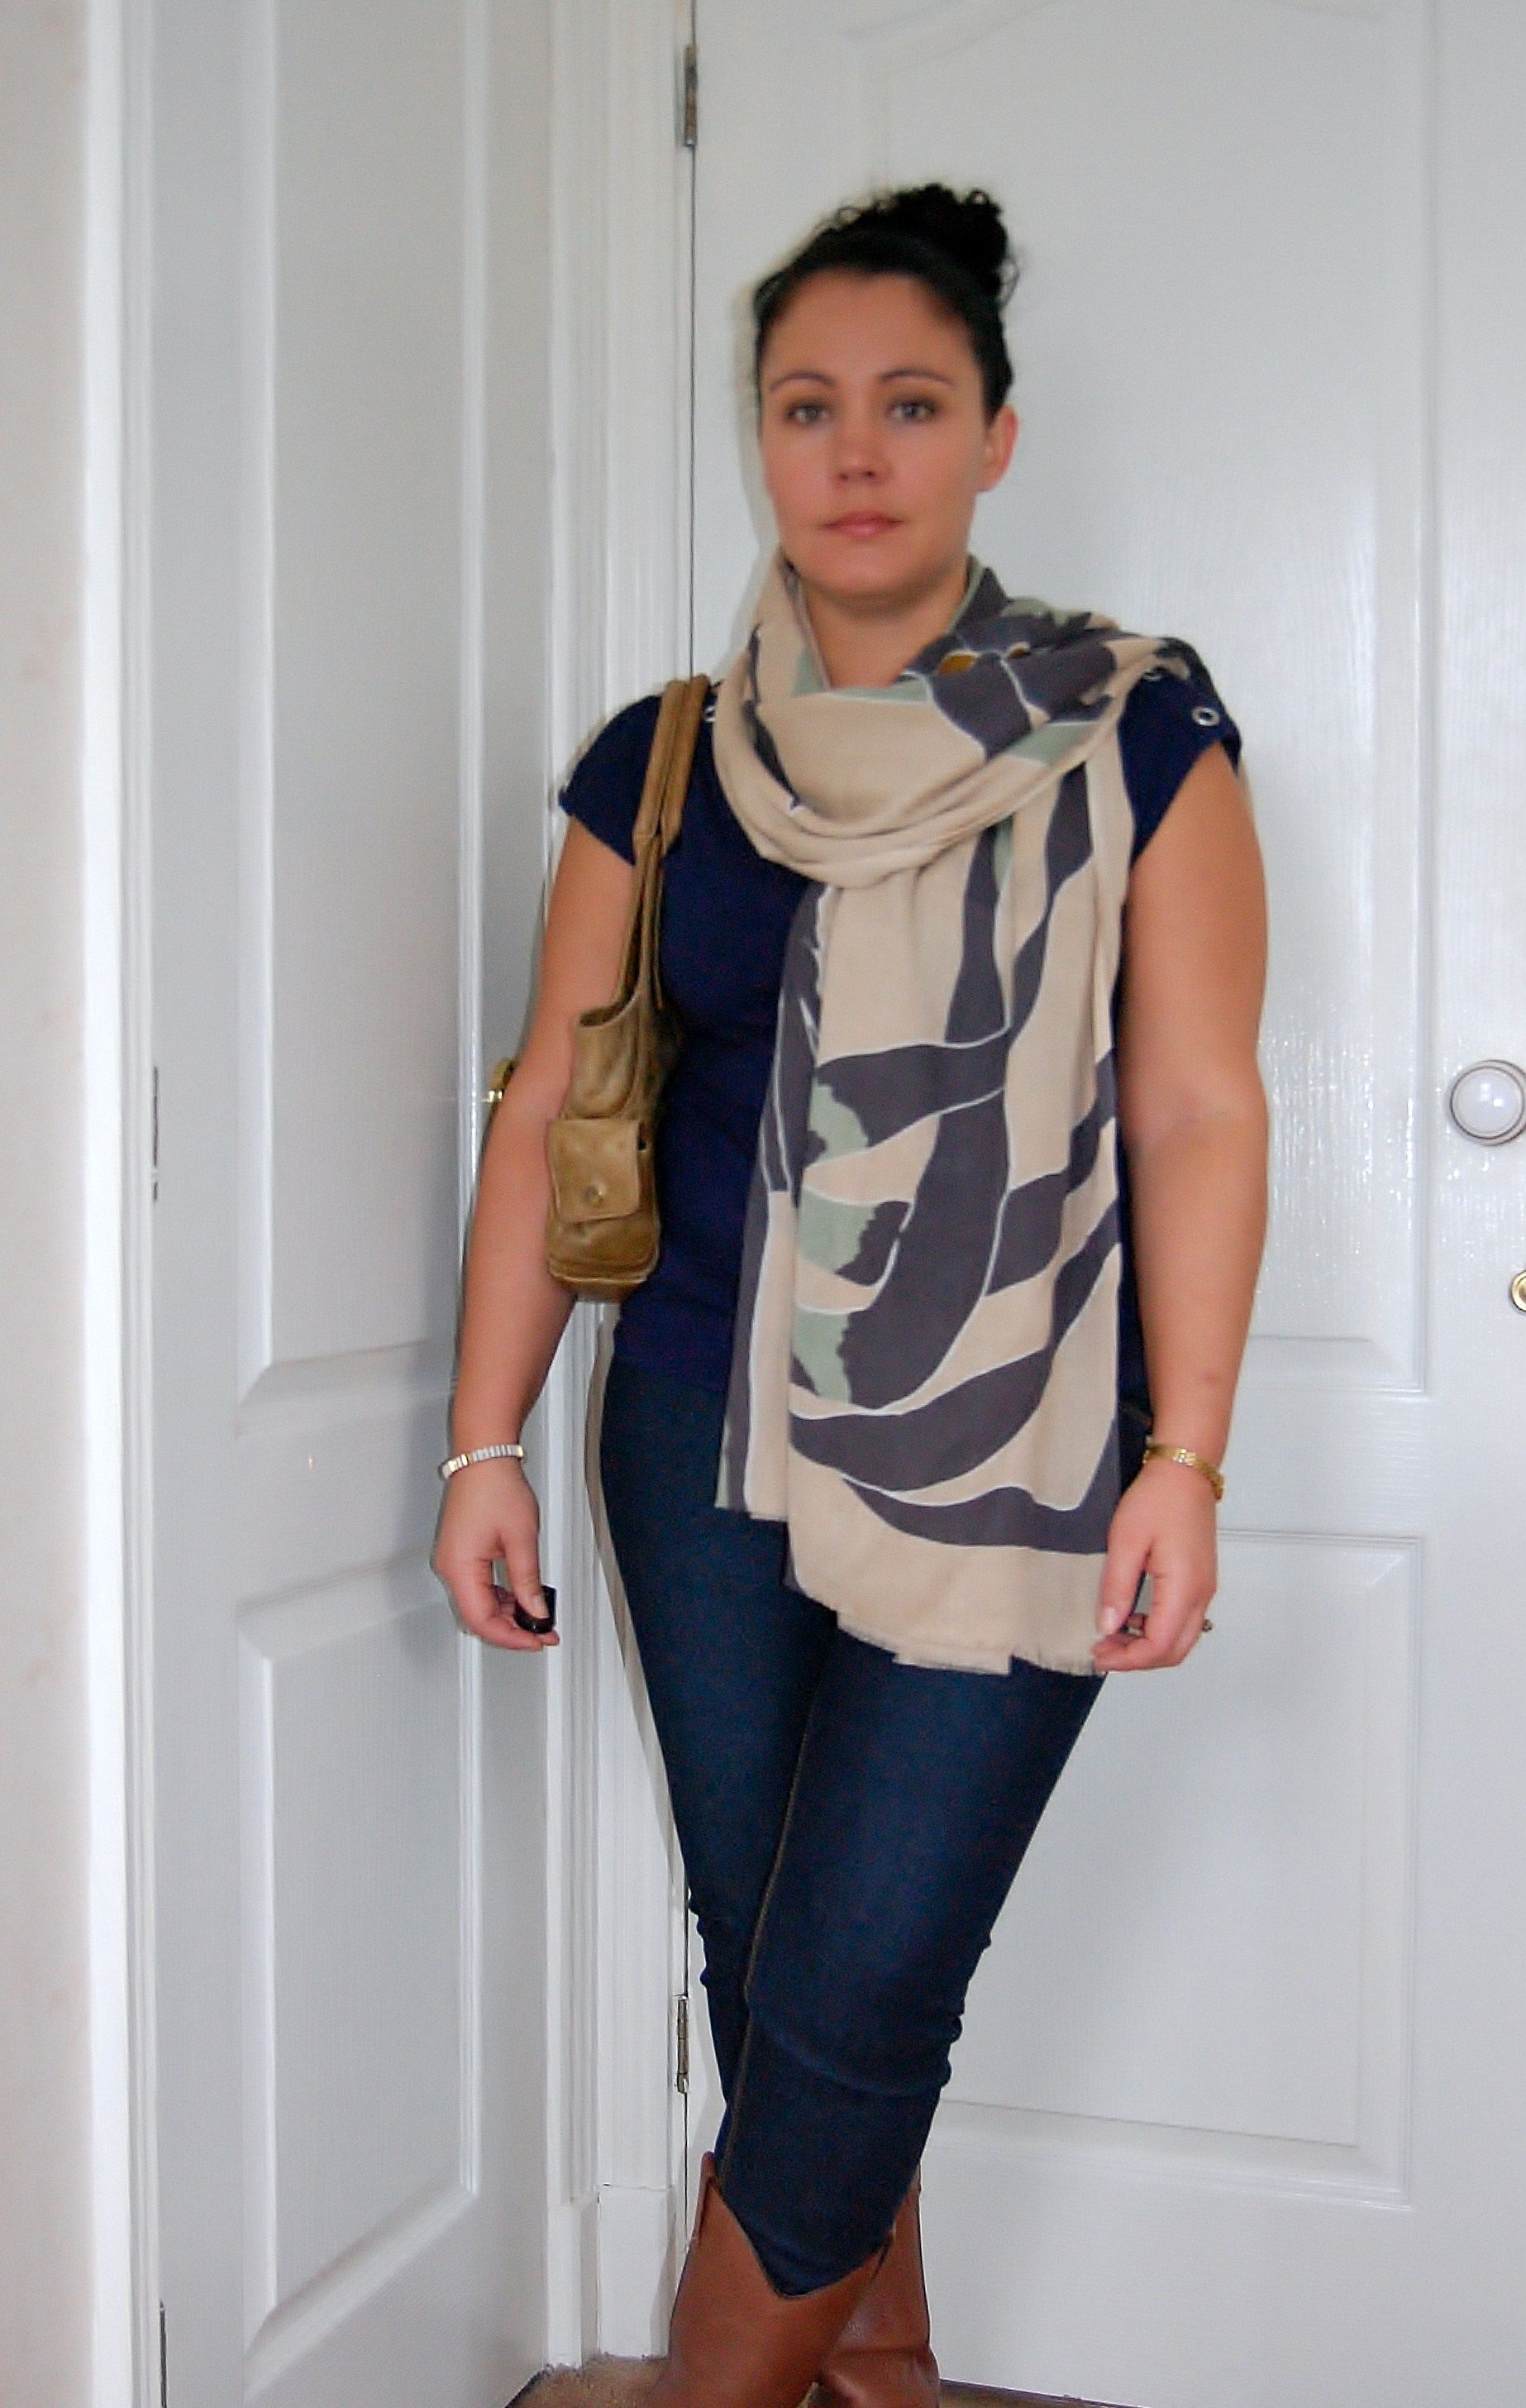 0101 Scarf by Elin Kling for Hoss Intropia